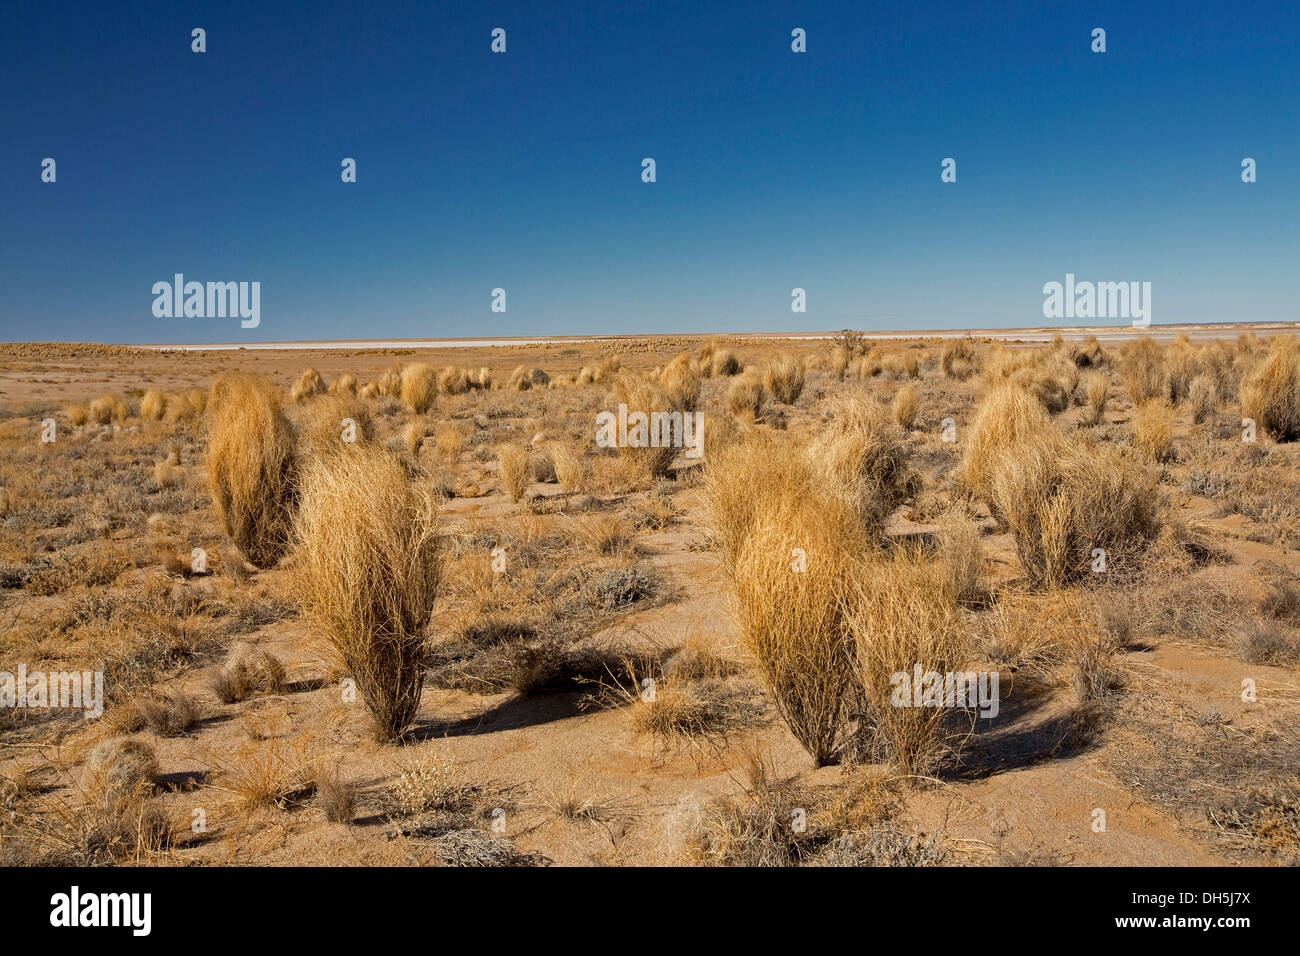 Australian outback landscape - plains with stark brown vegetation and cloudless blue sky near Lake Eyre northern South Australia - Stock Image